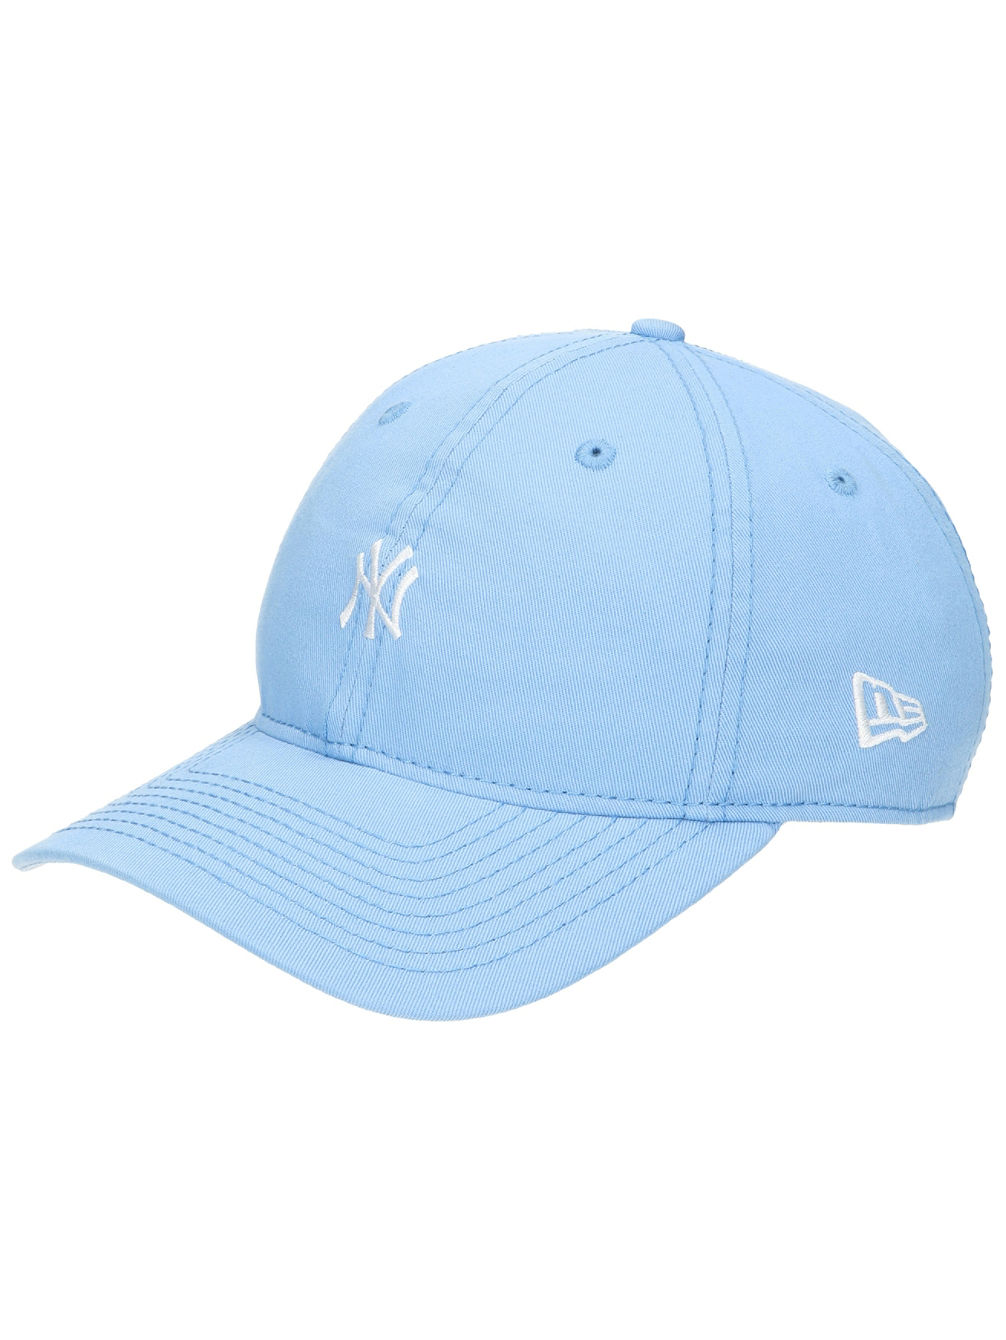 Pastel 920 Unstructured Cap